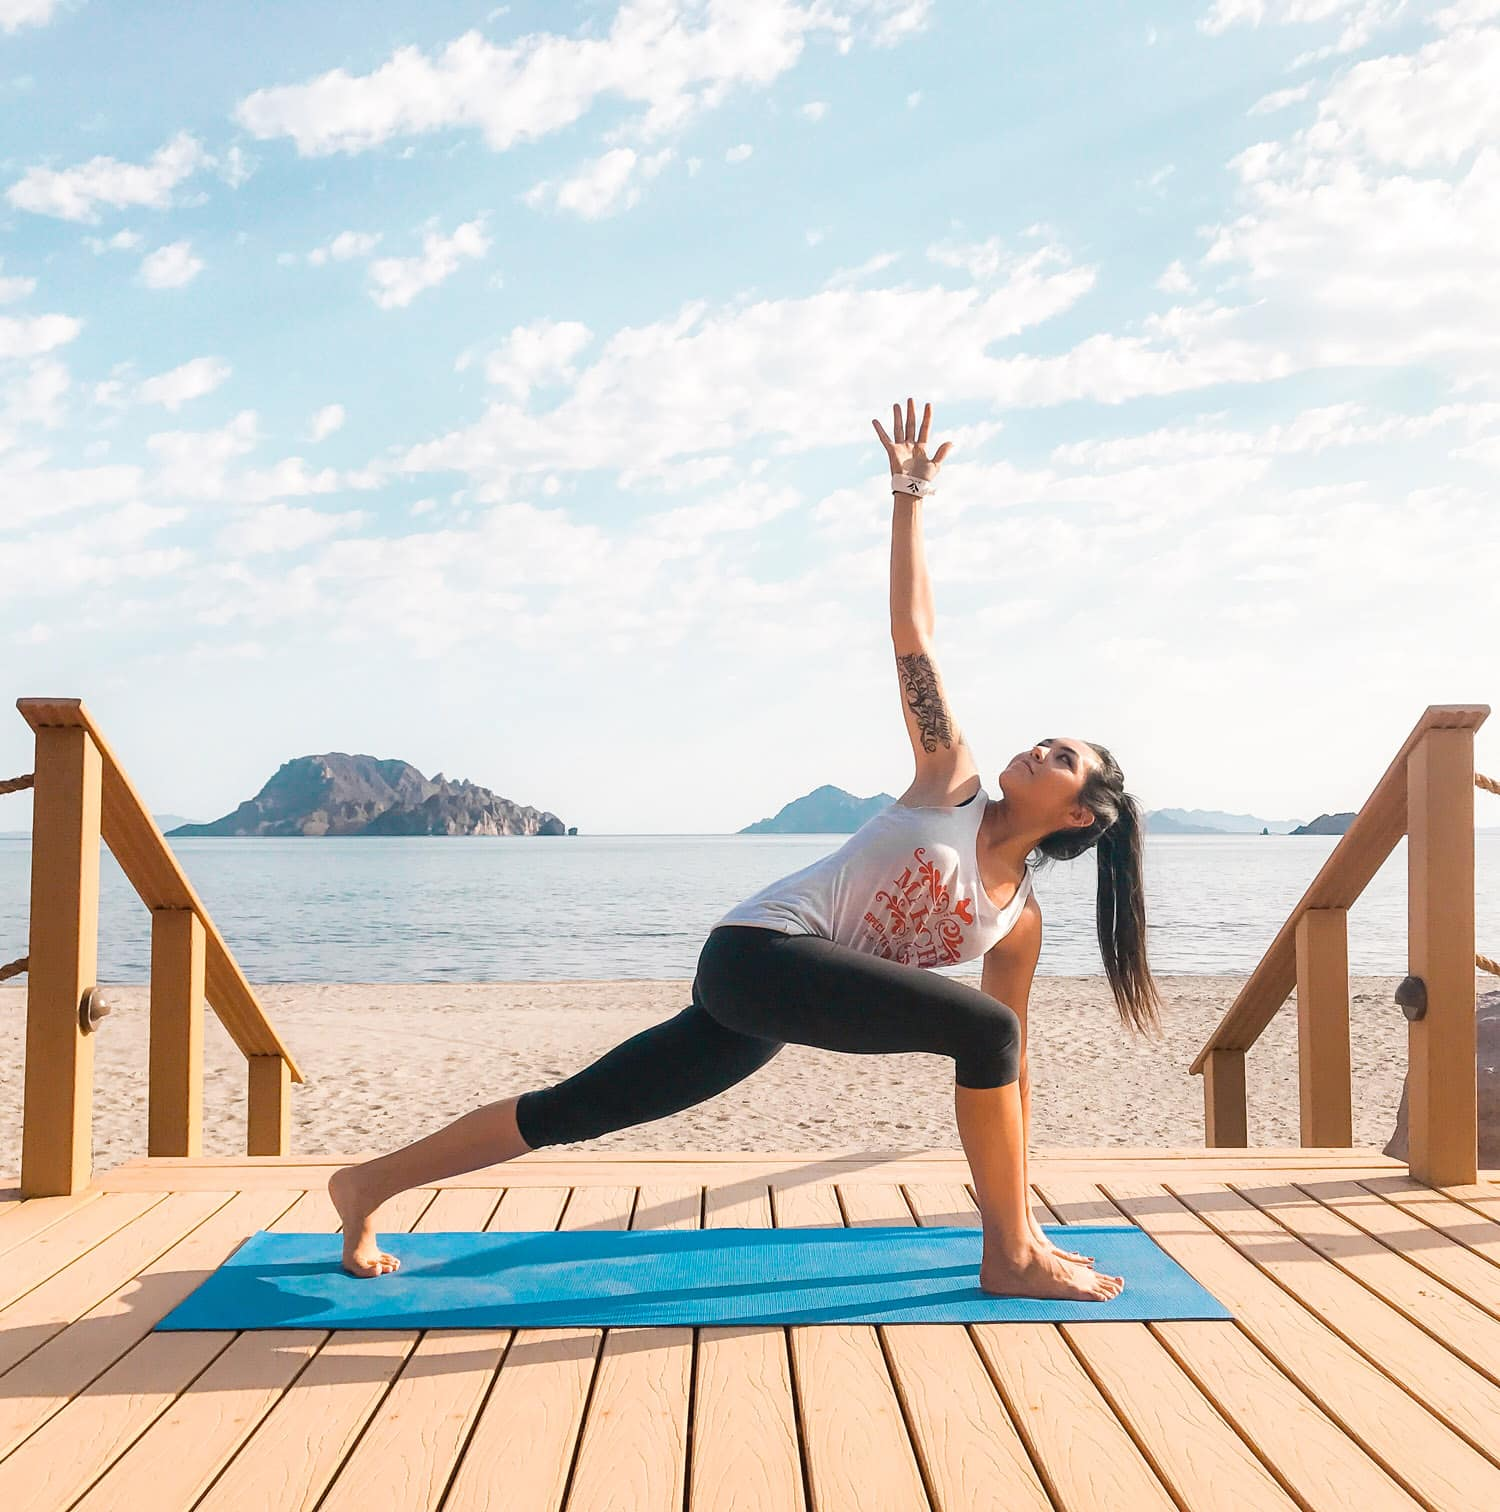 Yoga at Villa del Palmar at the Islands of Loreto. Looking for the BEST vacation destination to treat yourself? From a quiet getaway to soak up the sun or to enjoy your honeymoon, the Villa del Palmar at the Islands of Loreto, Mexico is one of those hidden gems you need to visit for yourself. This unique, affordable resort is packed with fun activities such as golfing, kayaking, paddle boarding, snorkeling, scuba diving, yoga, dancing, whale watching, and fishing. Whatever you're looking for in your upcoming getaway, Villa del Palmar offers it!